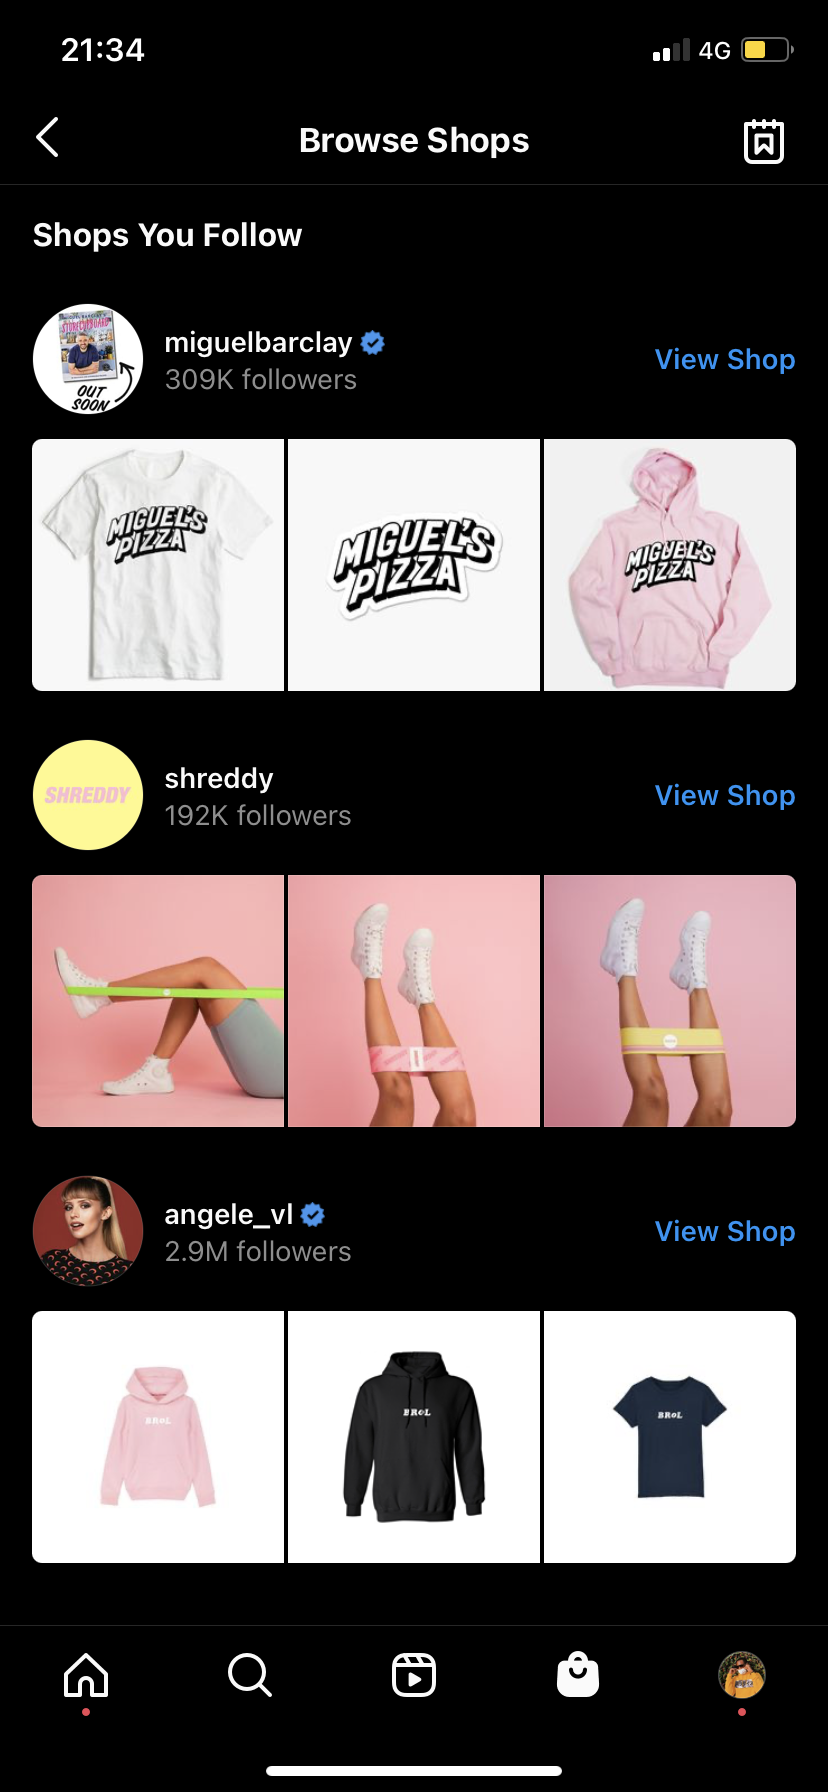 A screenshot taken of Instagram's Shop tab feature, displaying a list of online shops and products